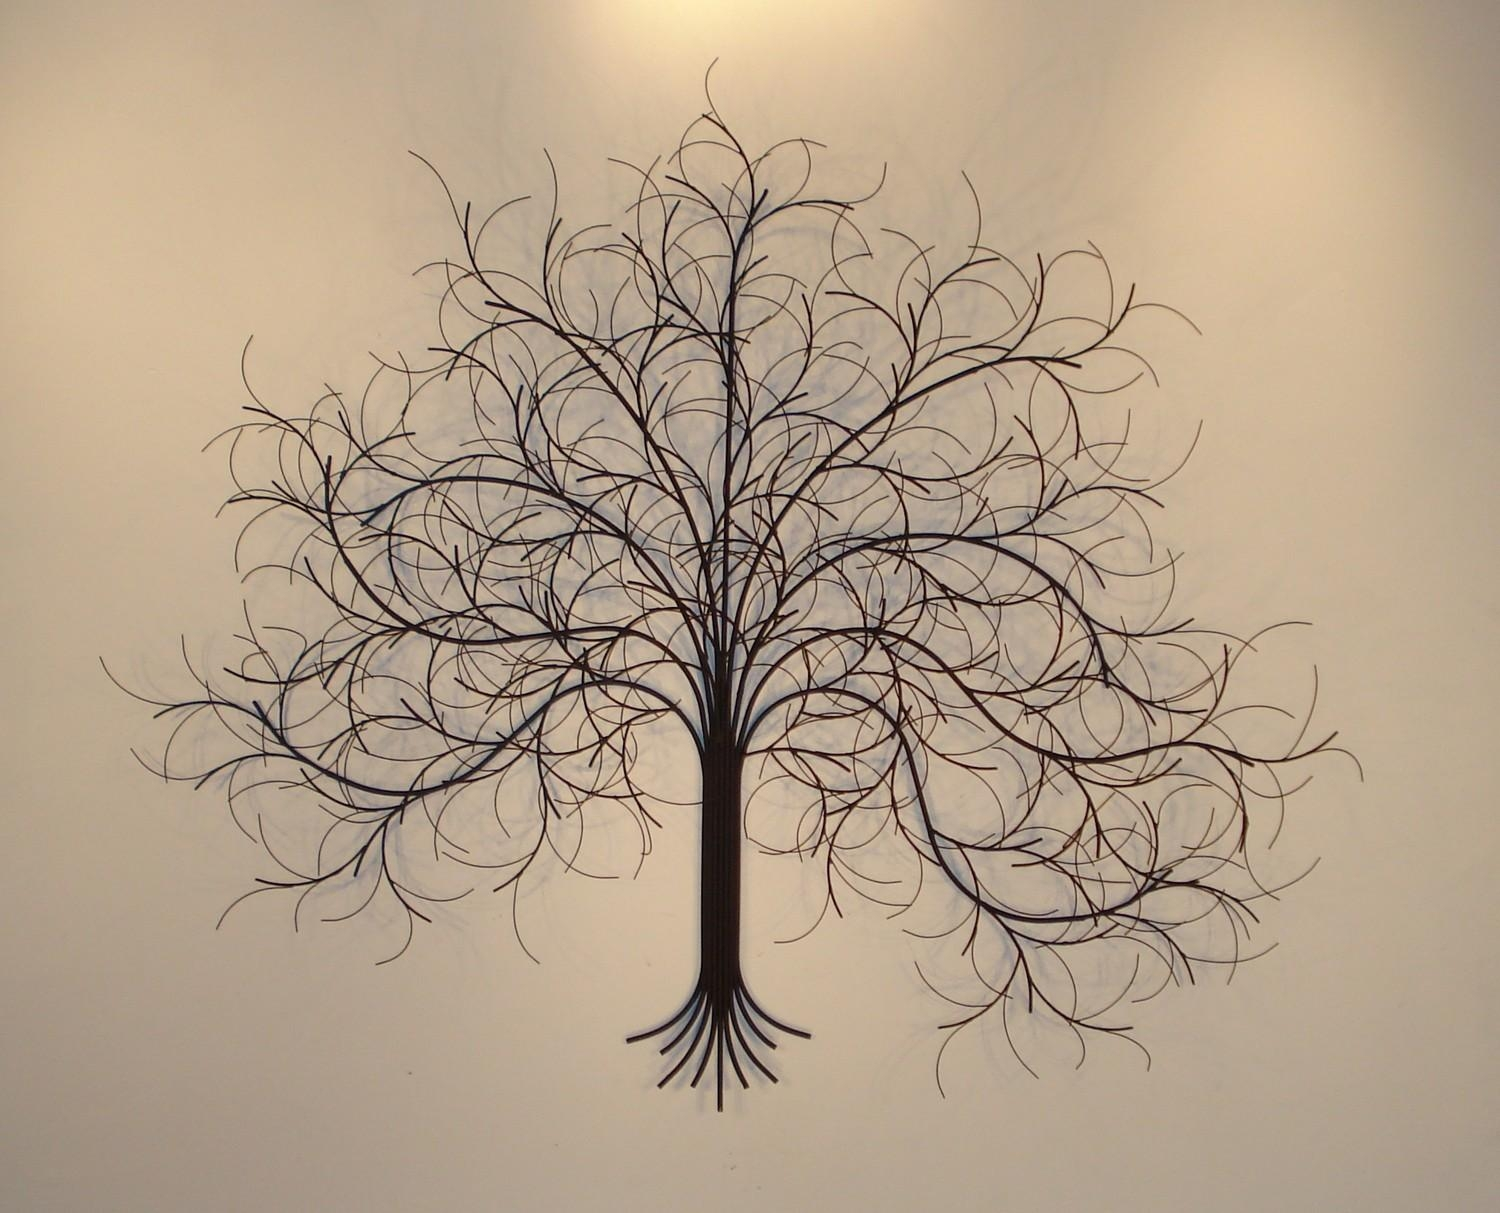 Trees – Wall Art – Metal Sculpture – Metal Decor Pertaining To Metal Tree Wall Art Sculpture (View 1 of 20)